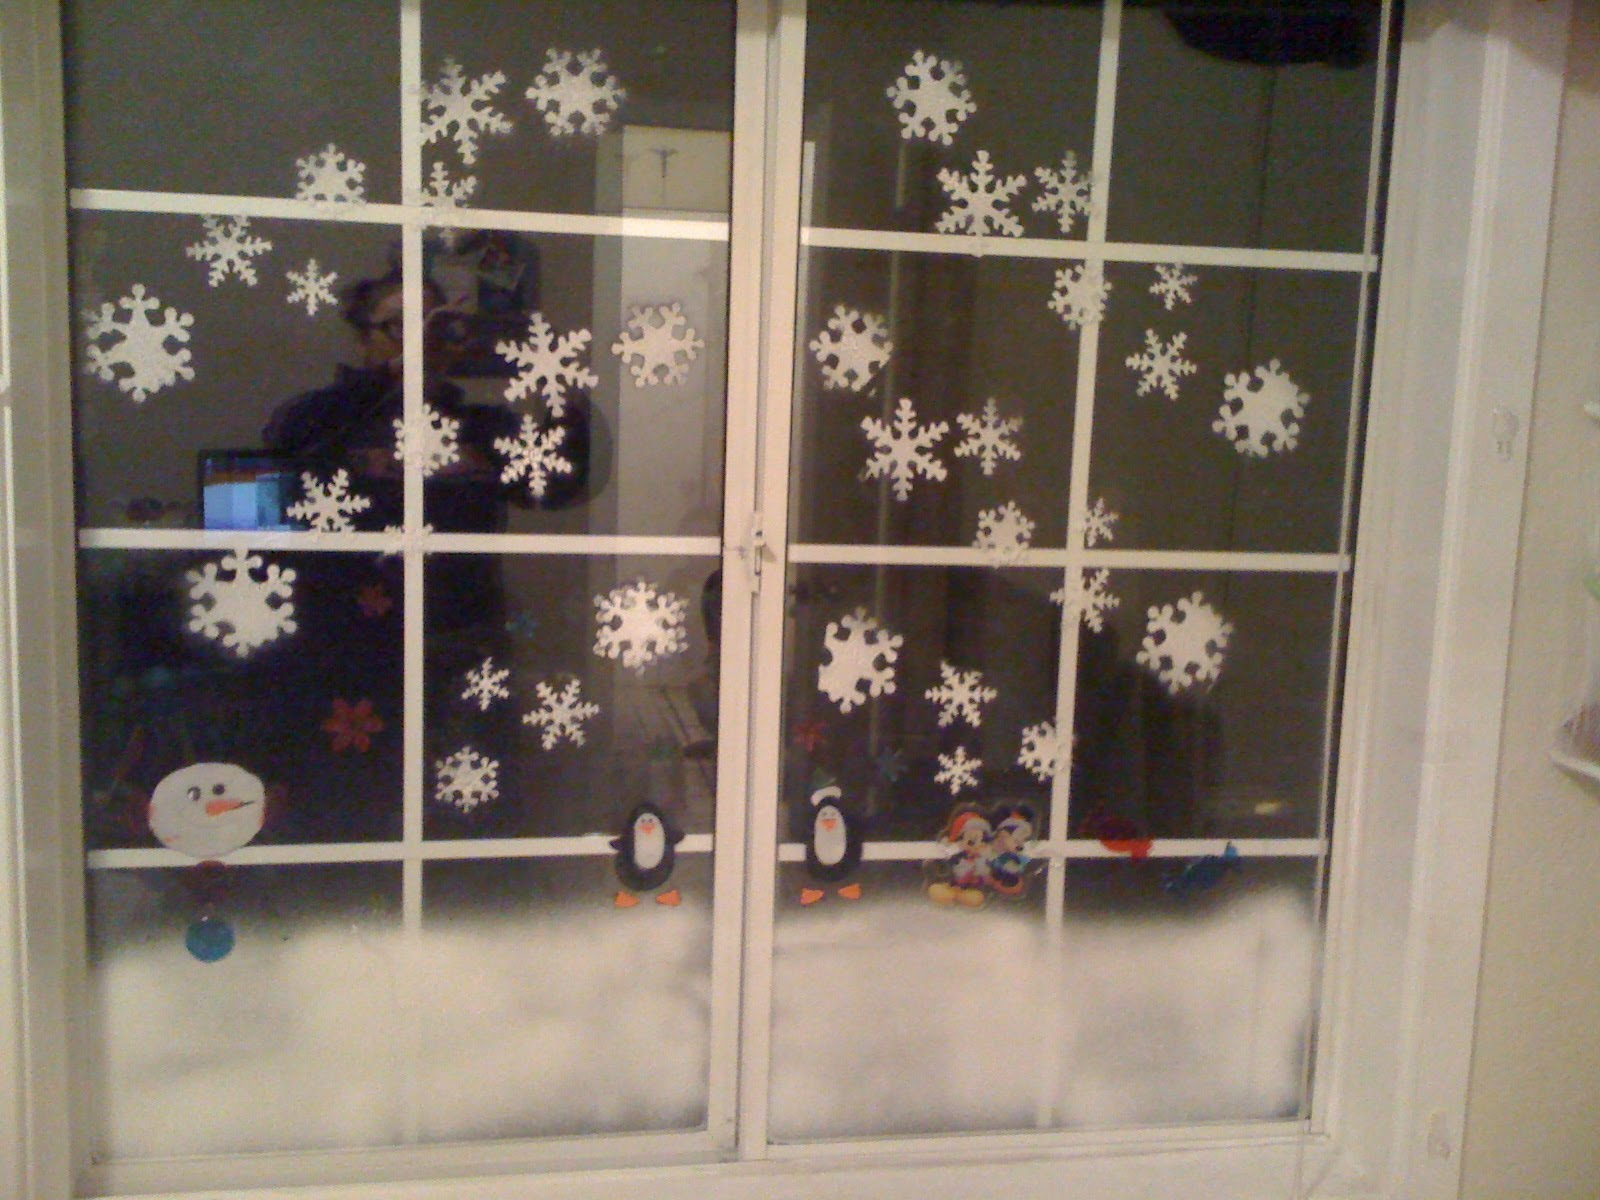 Headmaster Closes School After Mistaking Christmas Window Display For Real Snow The Rotherham Bugle